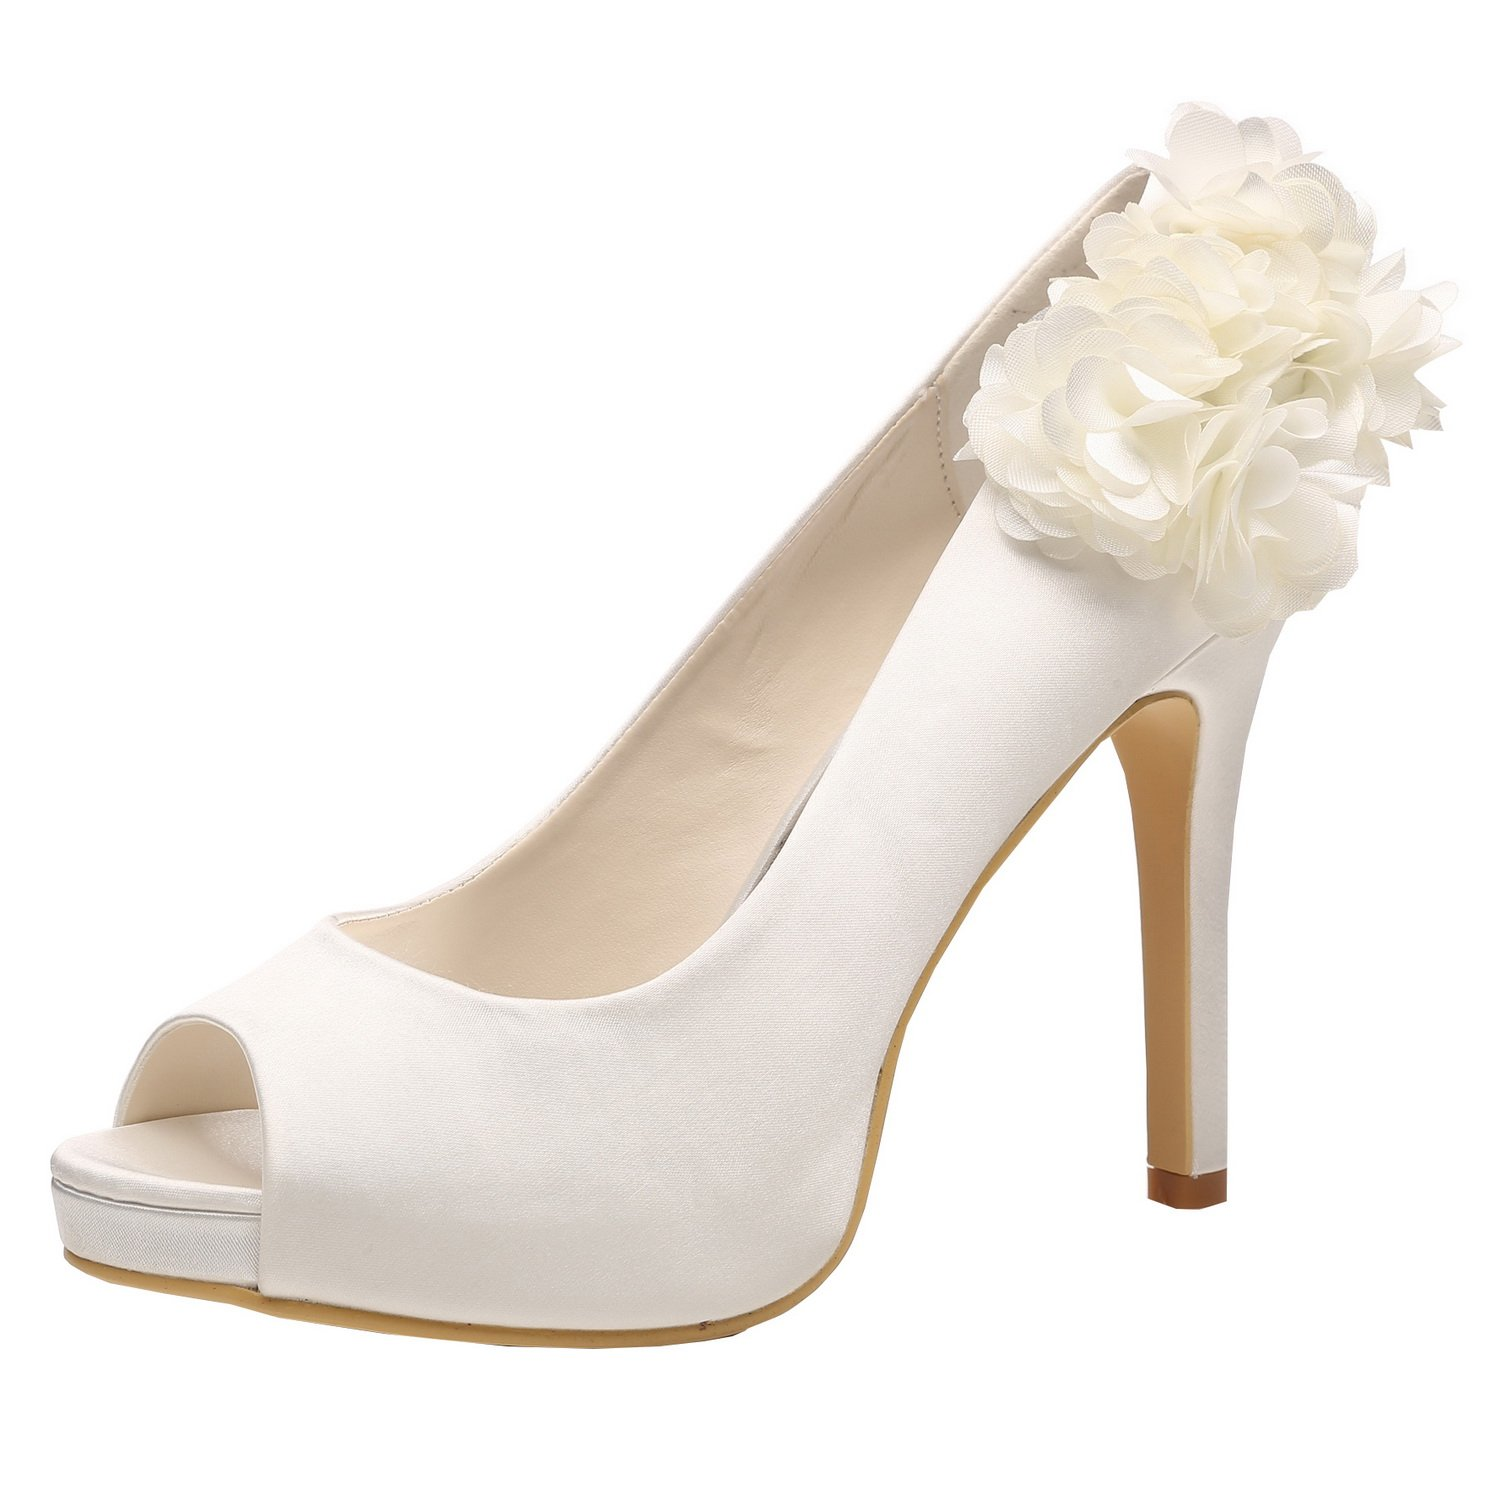 M MULGARIA Women High Heel Pumps Platform Peep Toe Flowers Satin Evening Prom Wedding Shoes B0791FFDPZ EU 40/8.5B(M)US|Ivory